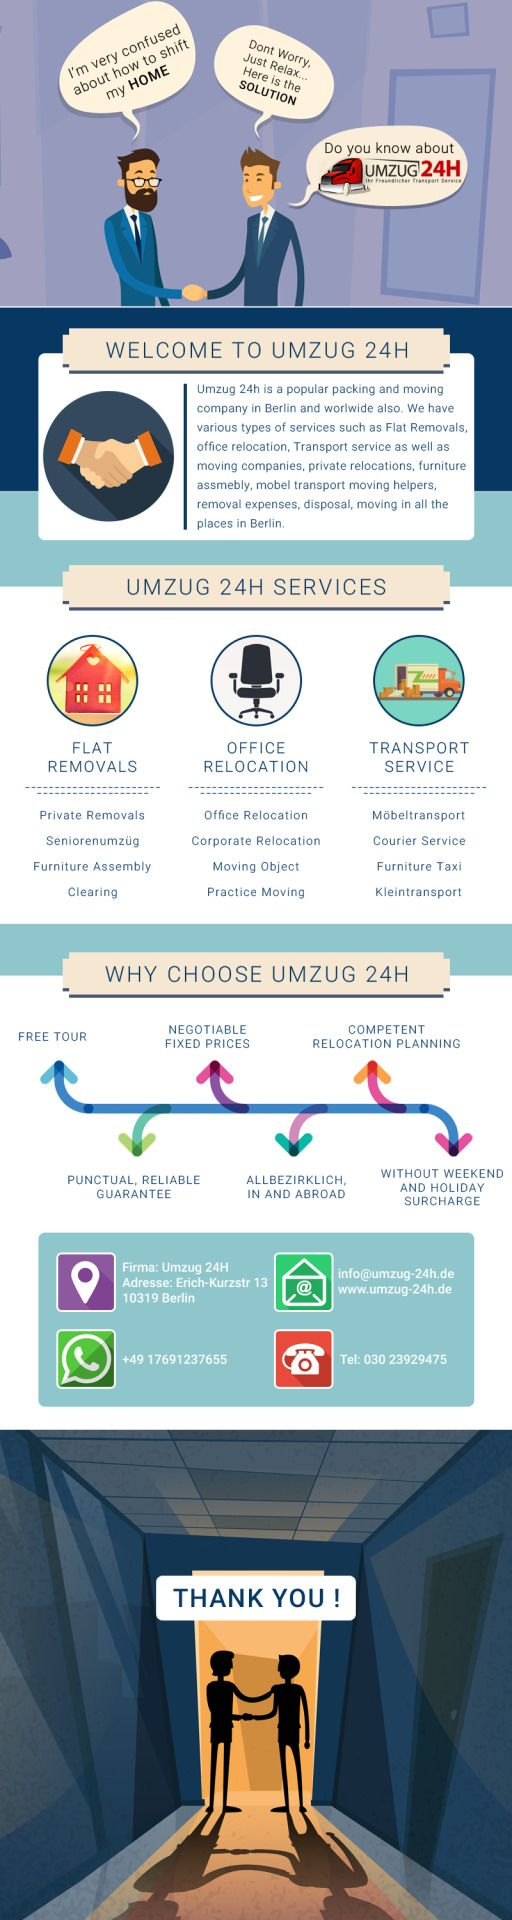 Relocation Service Berlin umzug 24h is a popular packing and moving company in berlin and